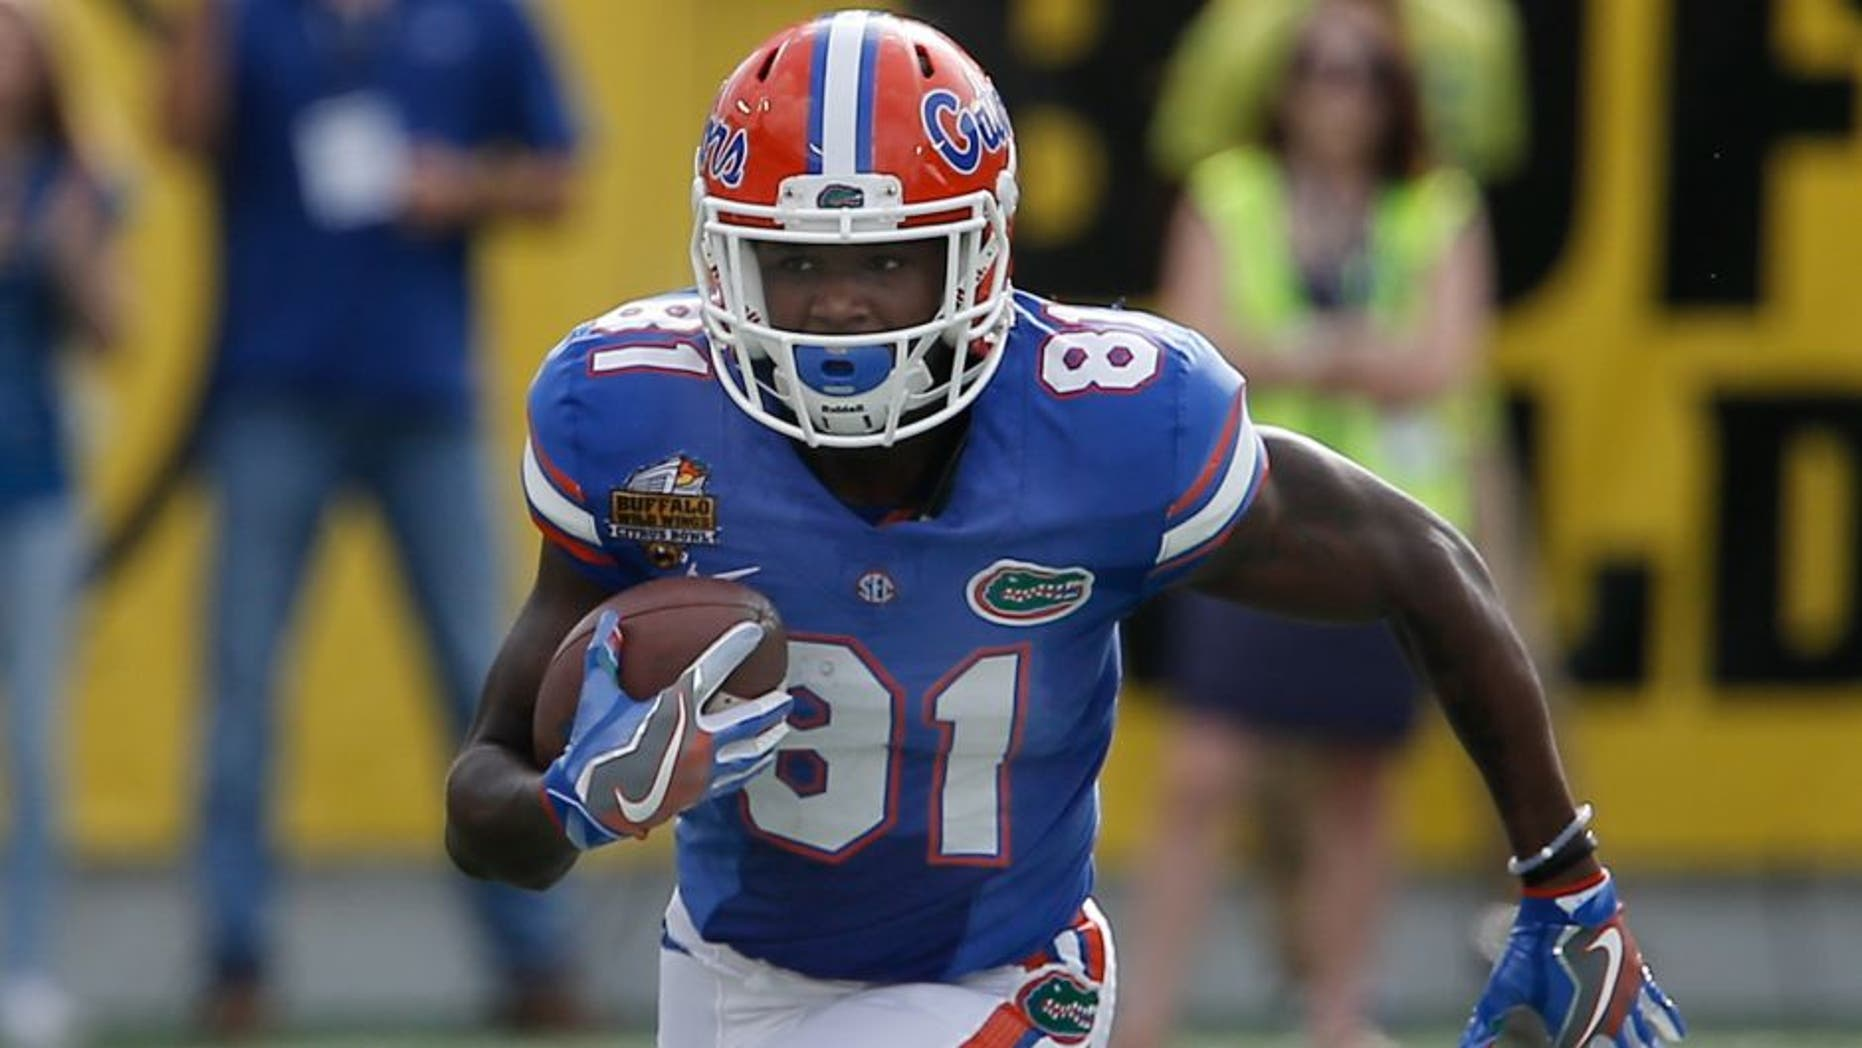 Jan 1, 2016; Orlando, FL, USA; Florida Gators wide receiver Antonio Callaway (81) runs during the second quarter against the Michigan Wolverines in the 2016 Citrus Bowl at Orlando Citrus Bowl Stadium. Mandatory Credit: Reinhold Matay-USA TODAY Sports